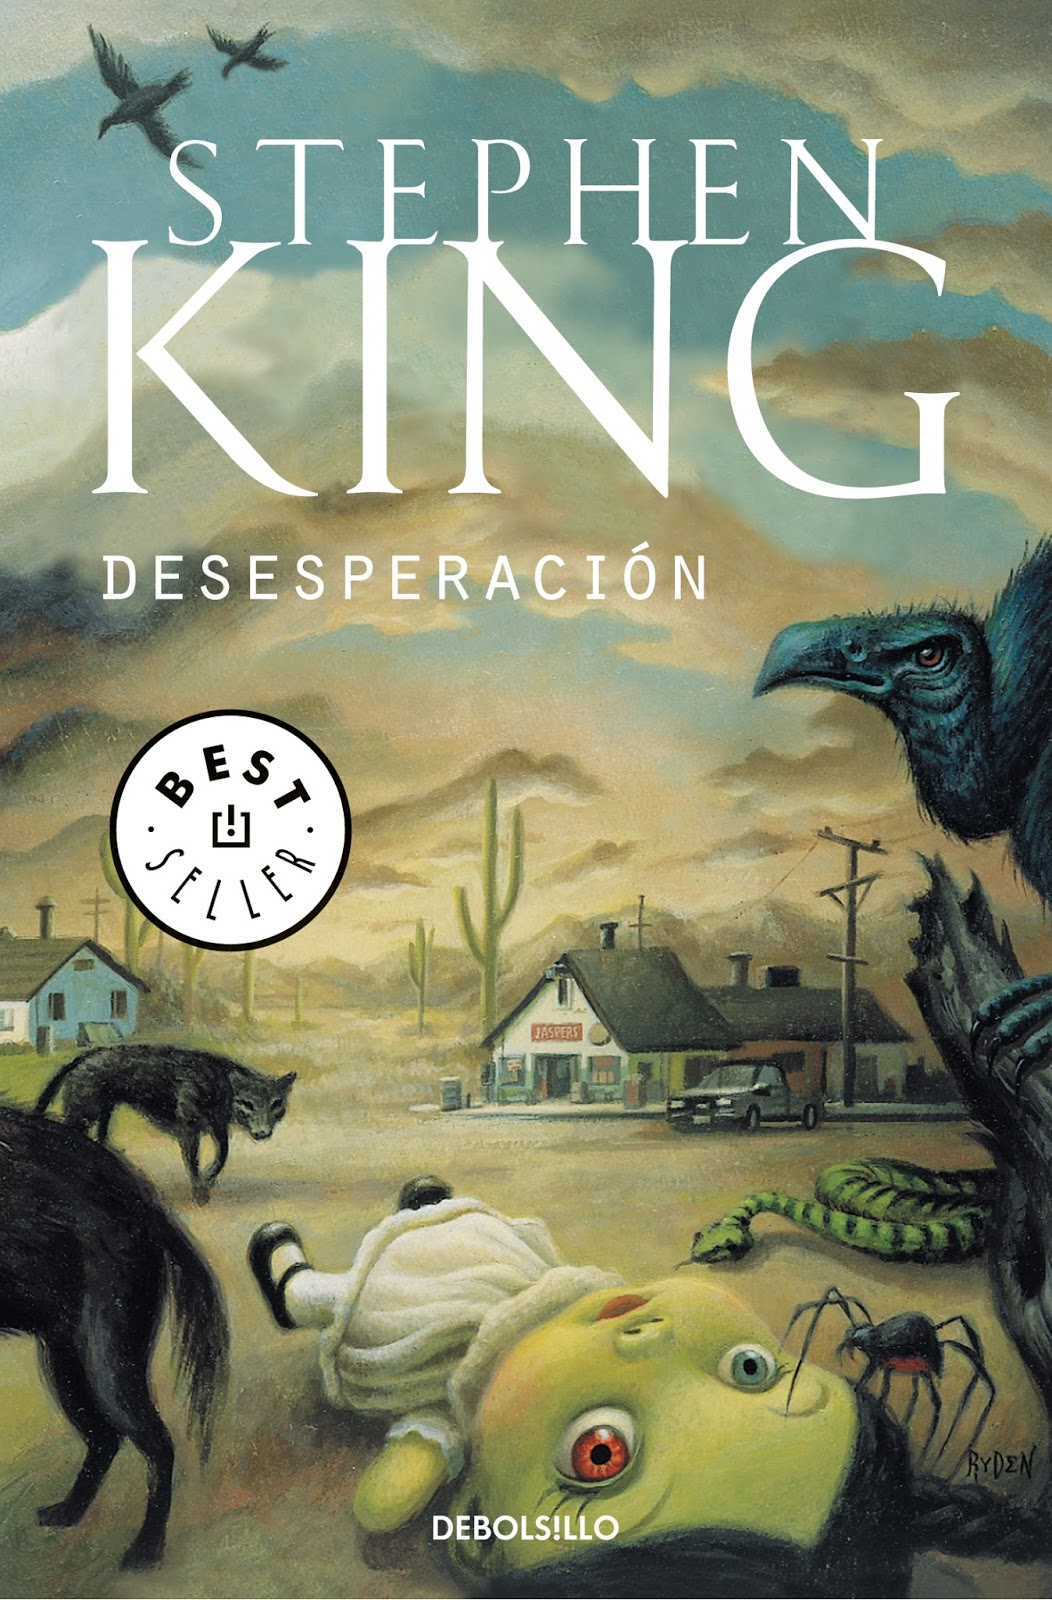 El Ultimo Libro De Stephen King Mundo No Escrito Booktag 1 Stephen King